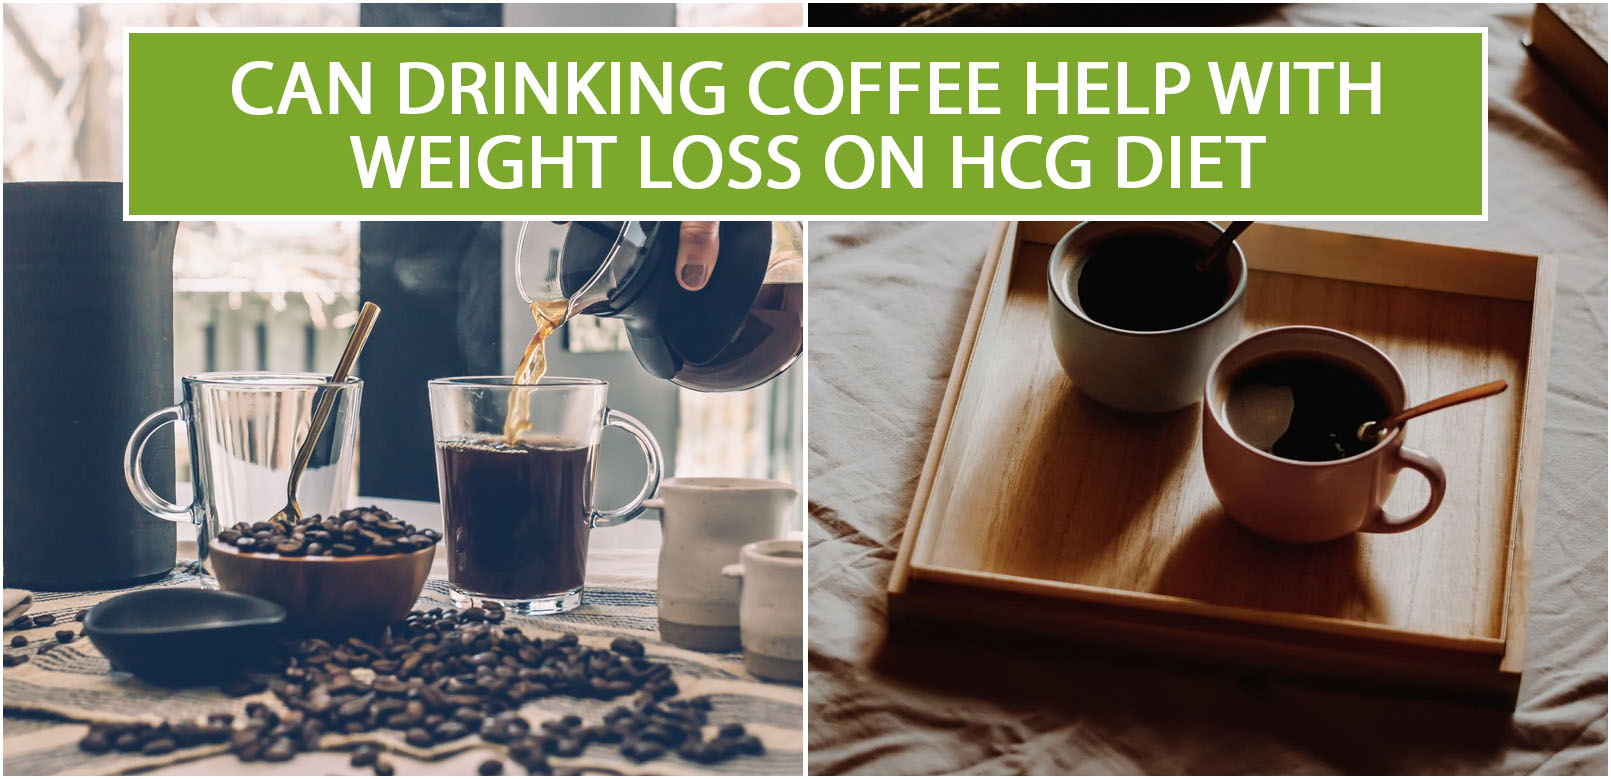 CAN DRINKING COFFEE HELP WITH WEIGHT LOSS ON HCG DIET